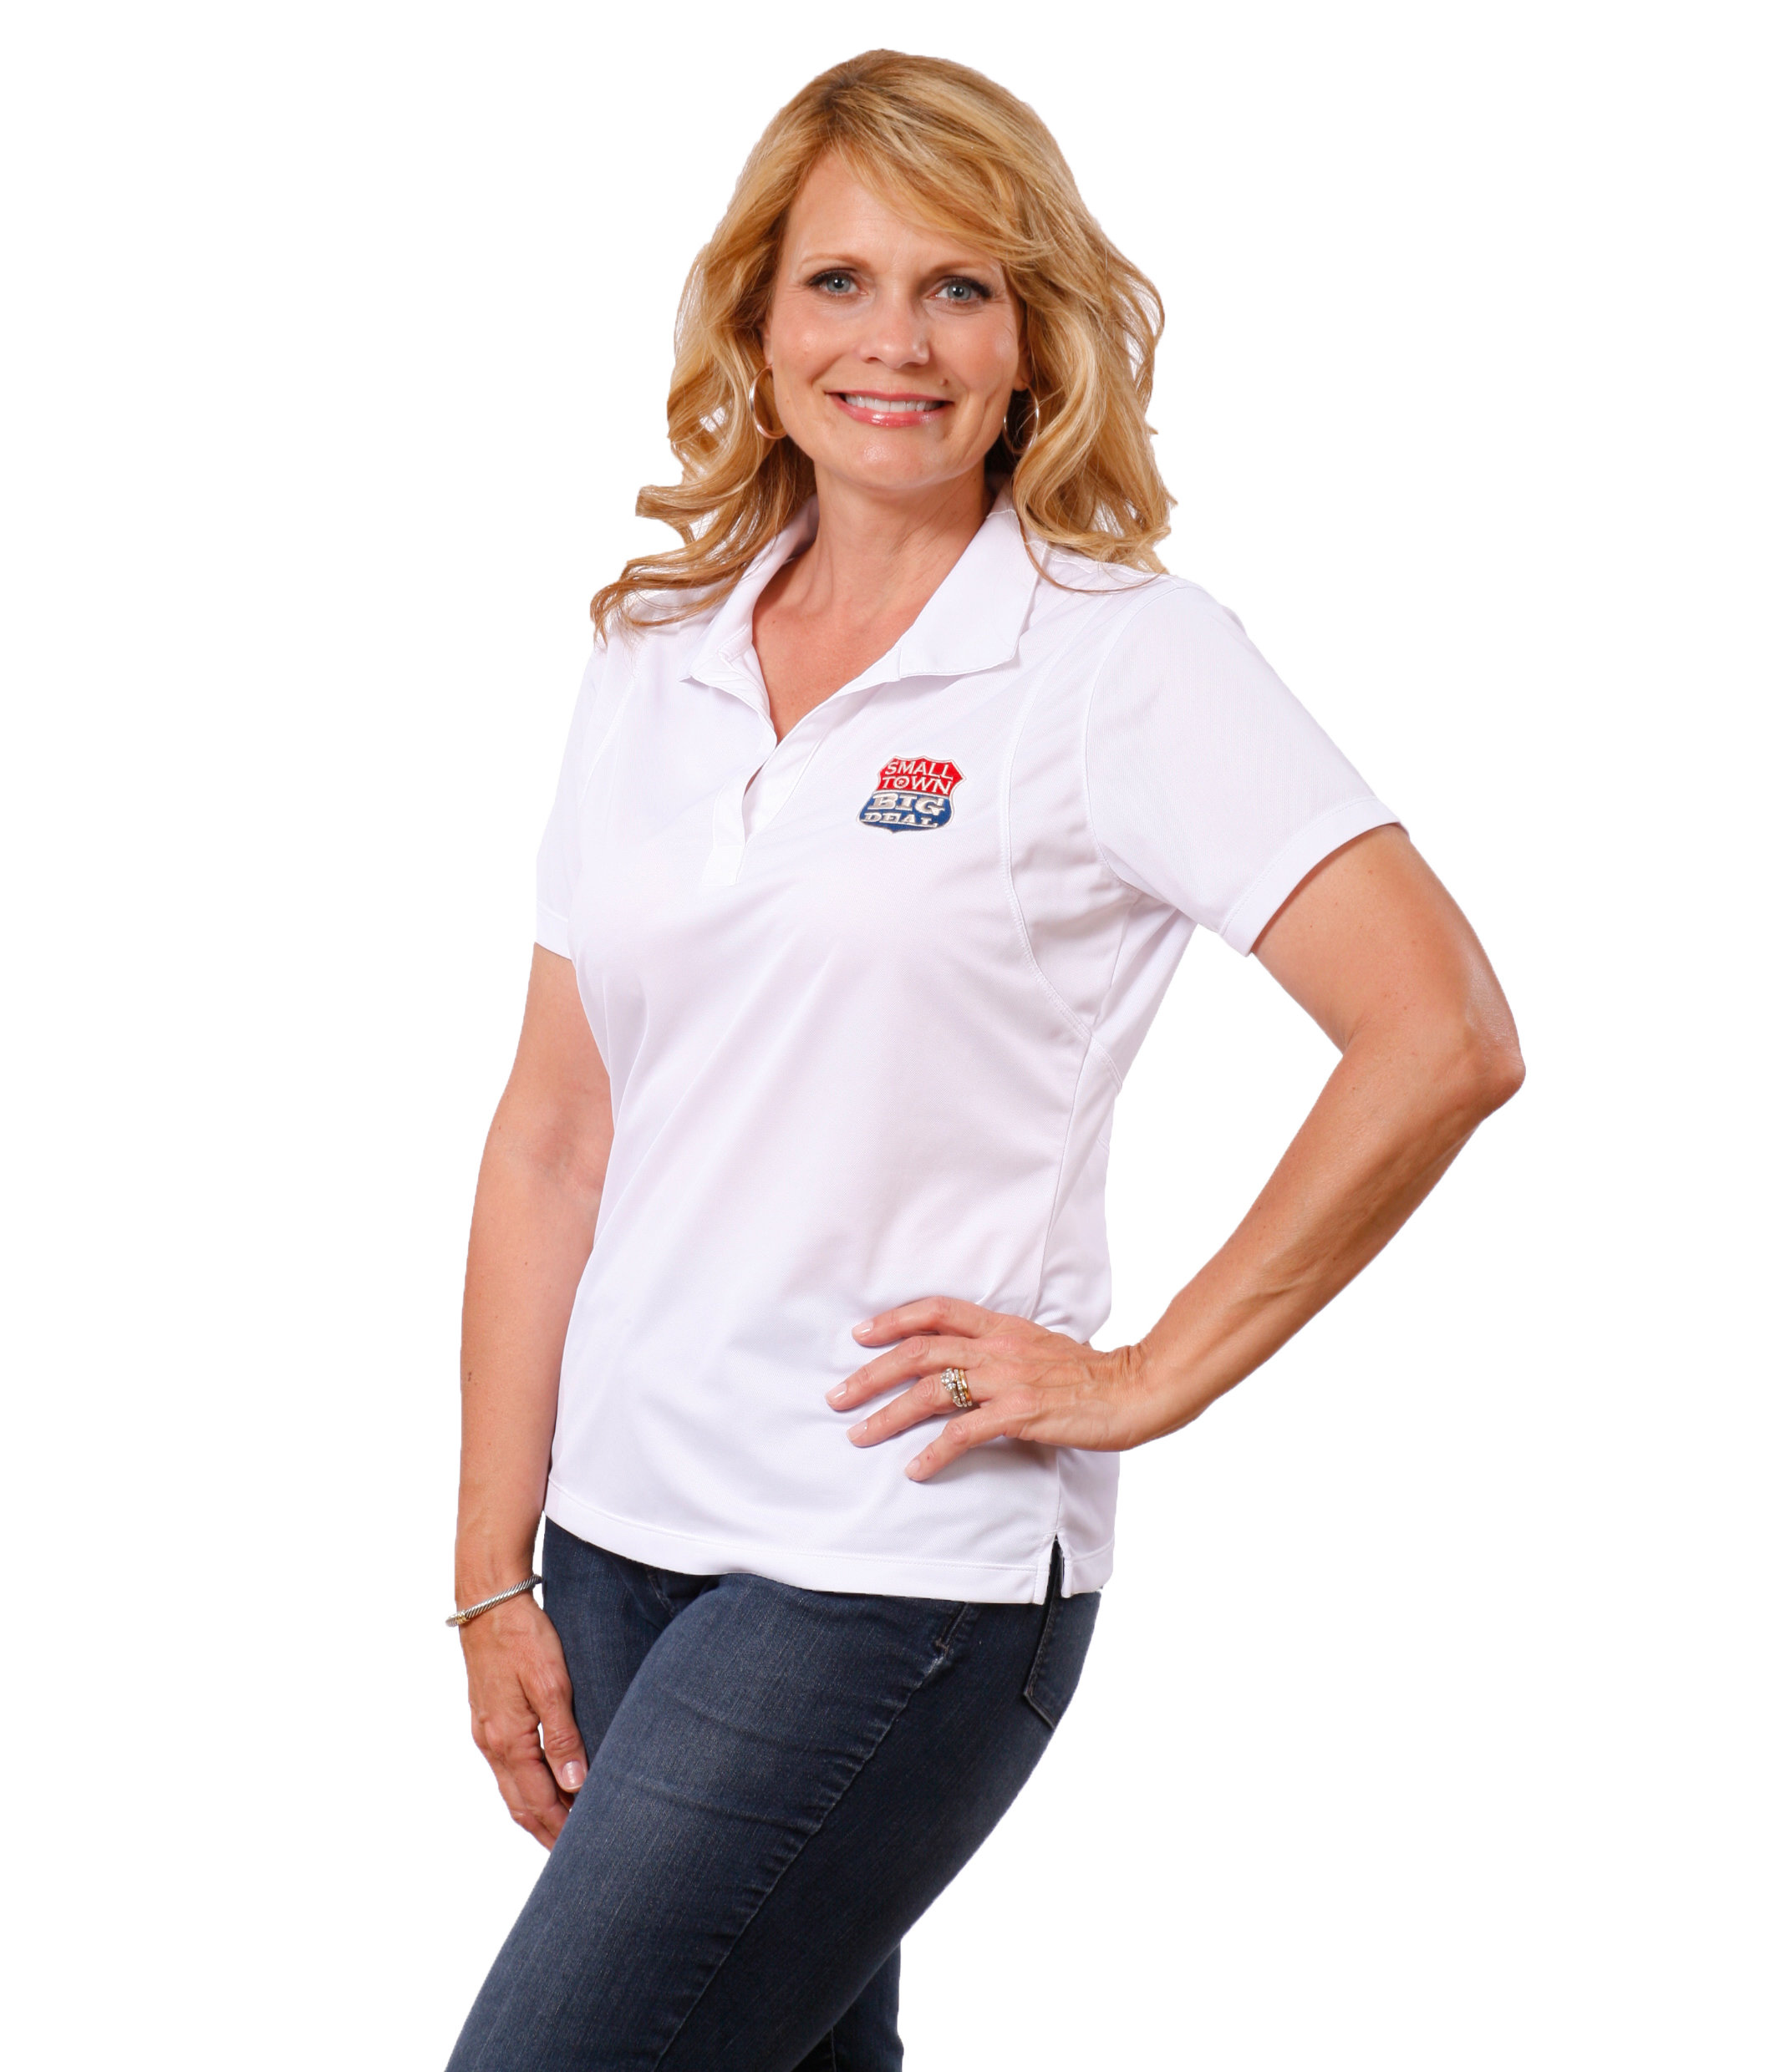 Ladies Moisture Wicking Sports Shirt with full color logo STLWPFC